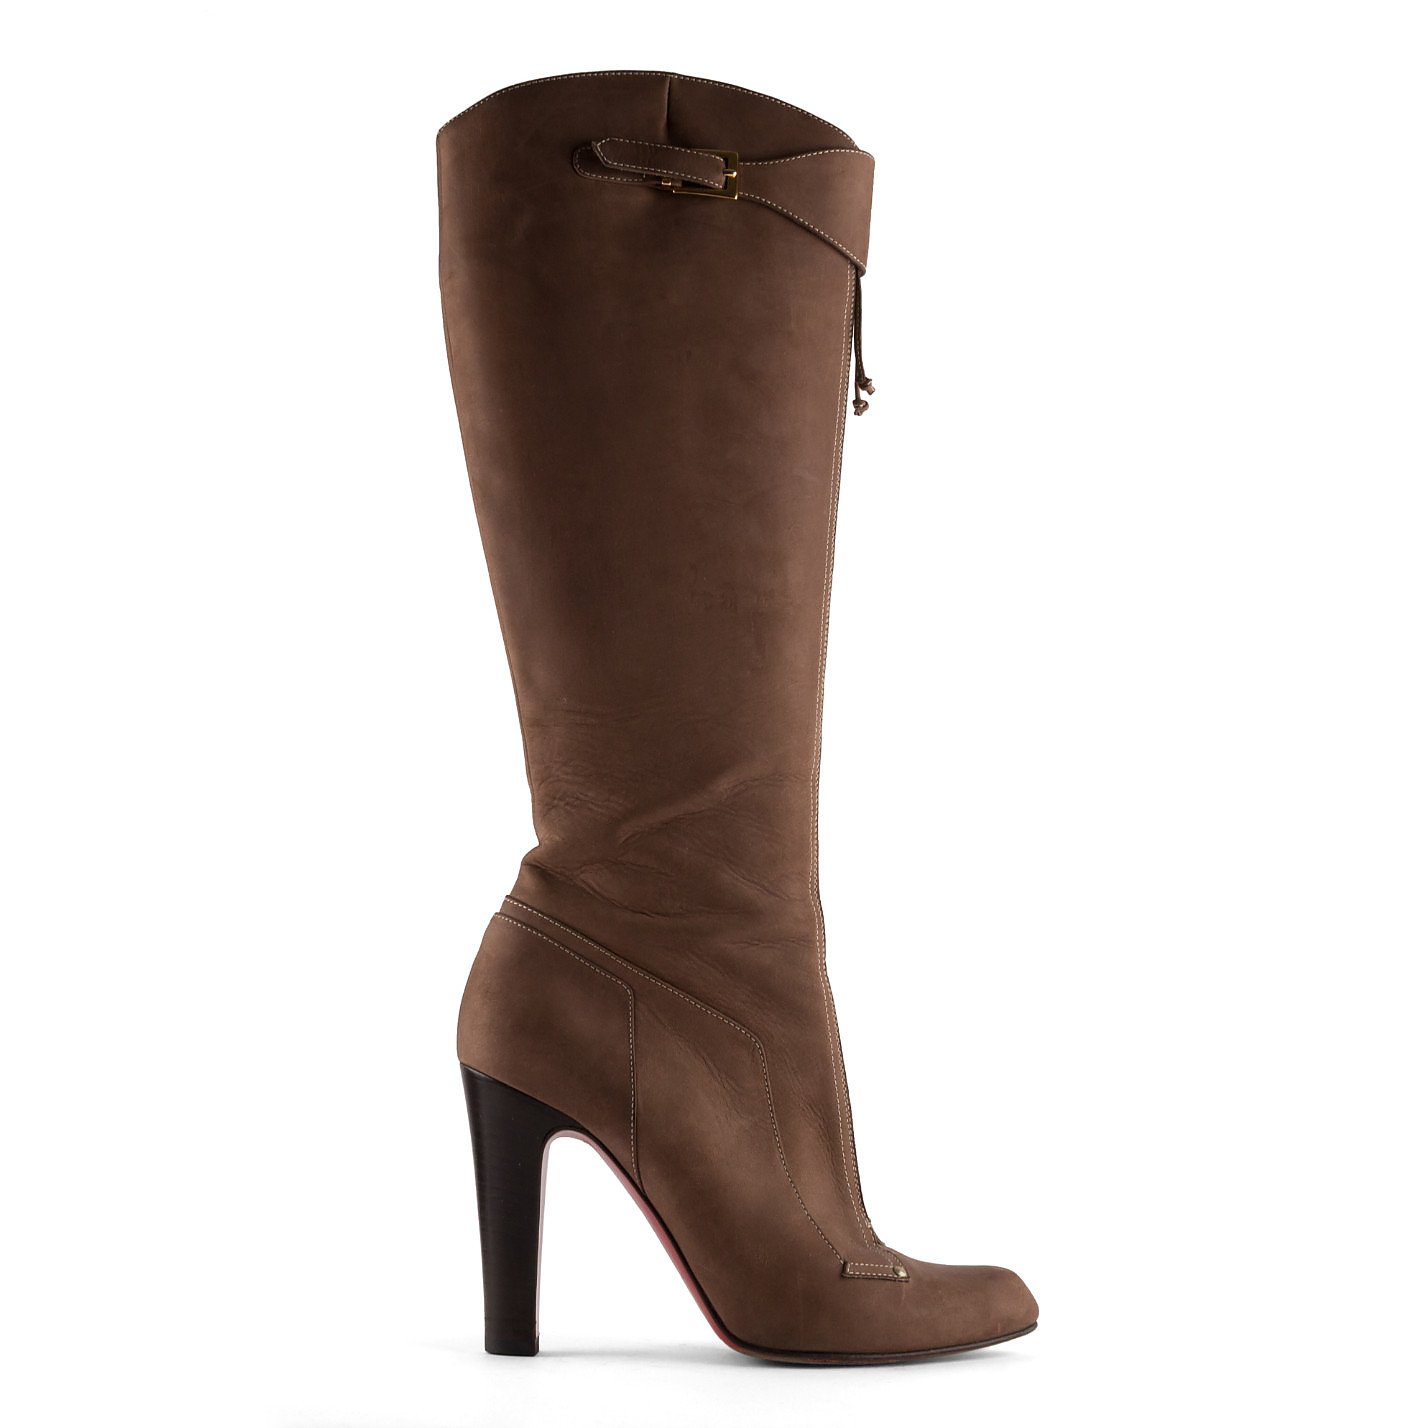 Christian Louboutin Suede Saddle Boots